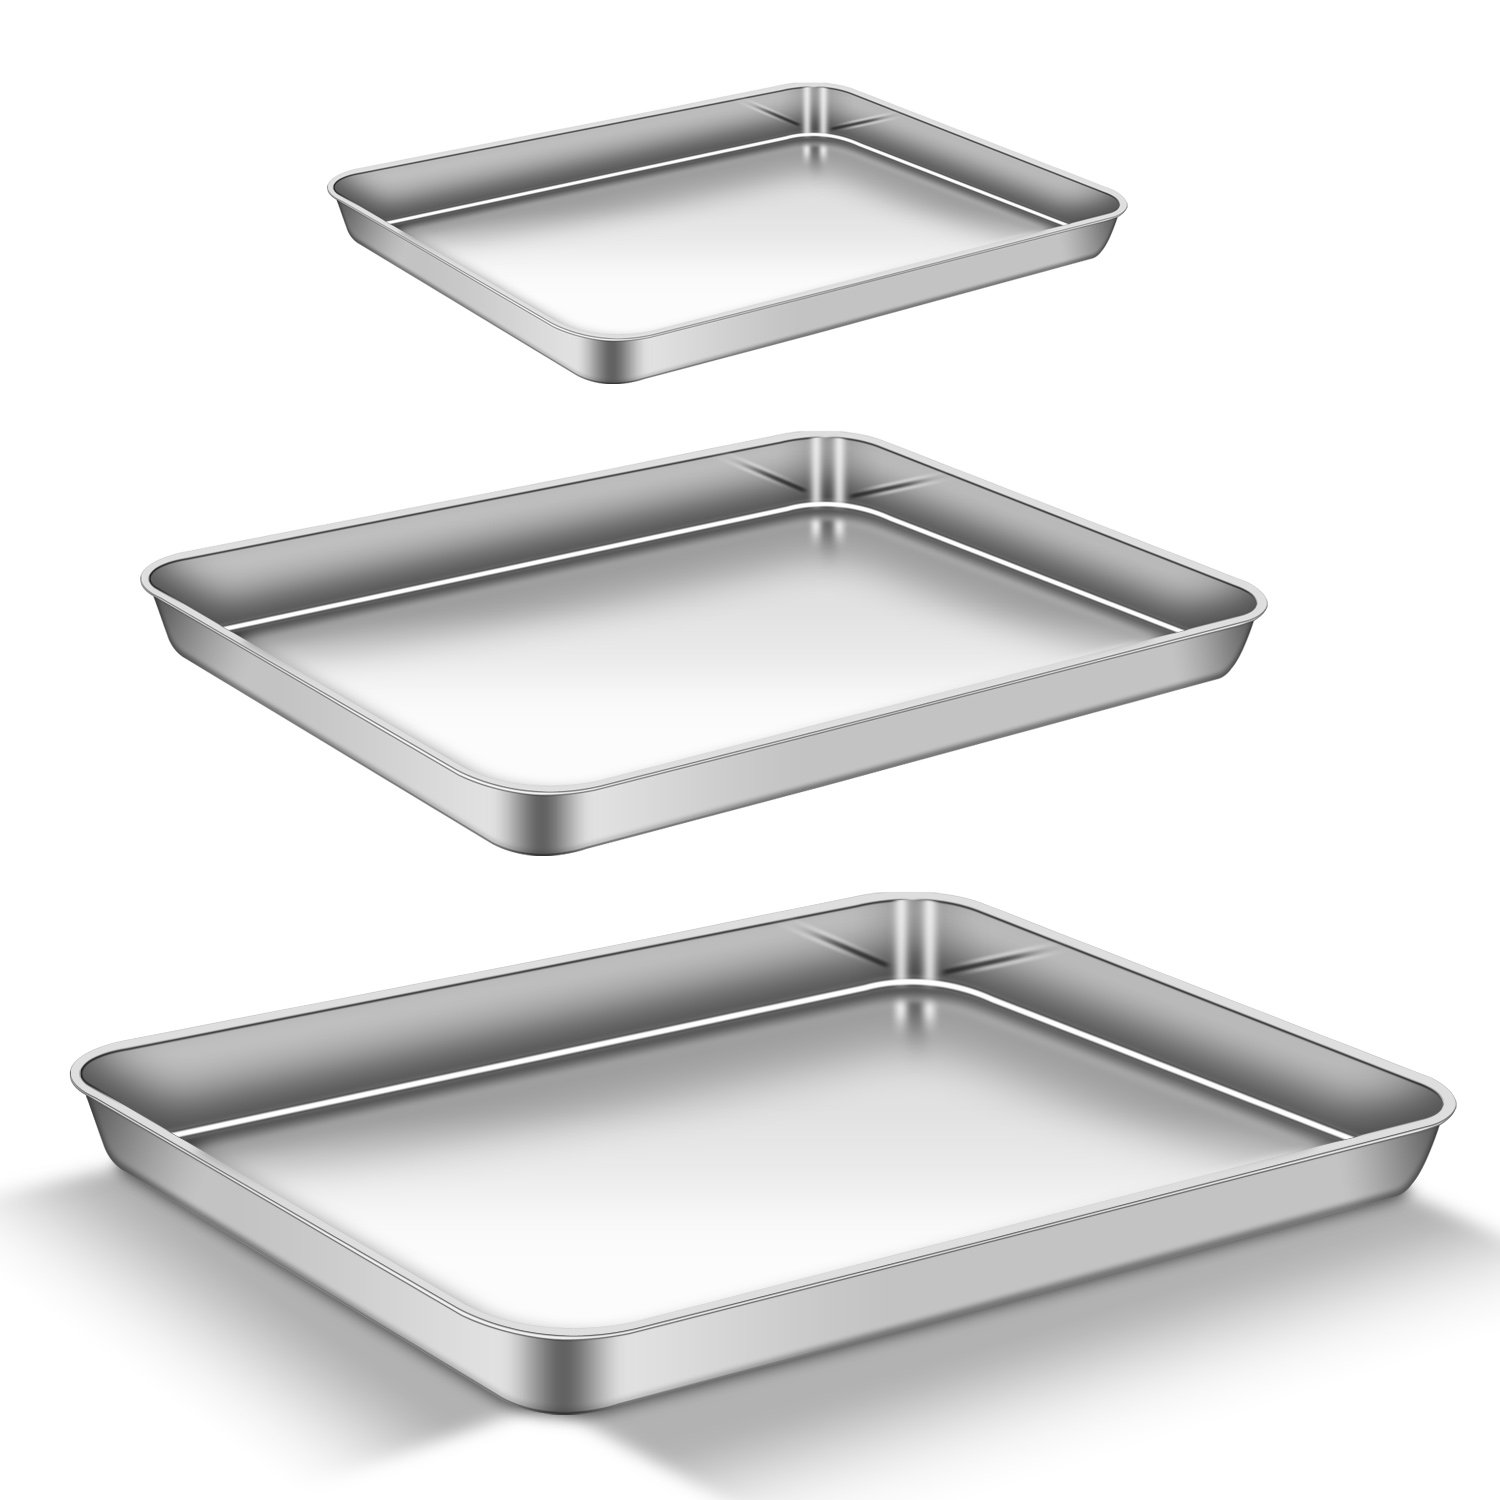 Baking Sheet Set of 3, AEMIAO Stainless Steel 18/0 Baking Pan Bakeware Cookie Sheets Toaster Oven Pan Baking Trays, Healthy & Non Toxic, Mirror Finish & Rust Free,Oven & Dishwasher Safe